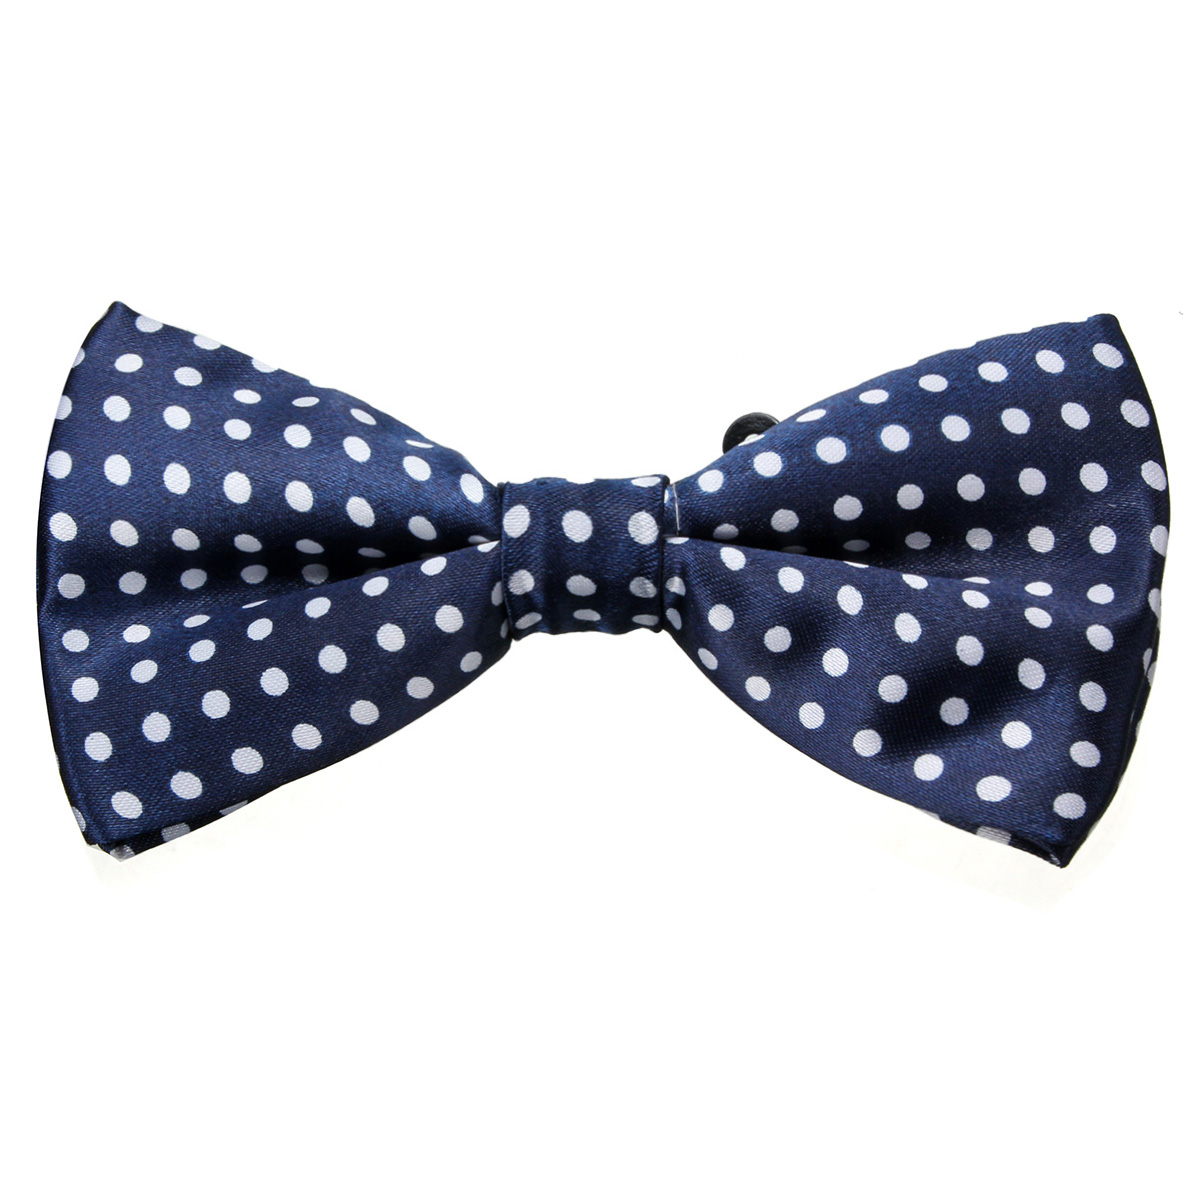 Men Male Dacron Tuxedo BowtiE Classic Wedding Party Bow Tie Necktie Suit Accessories